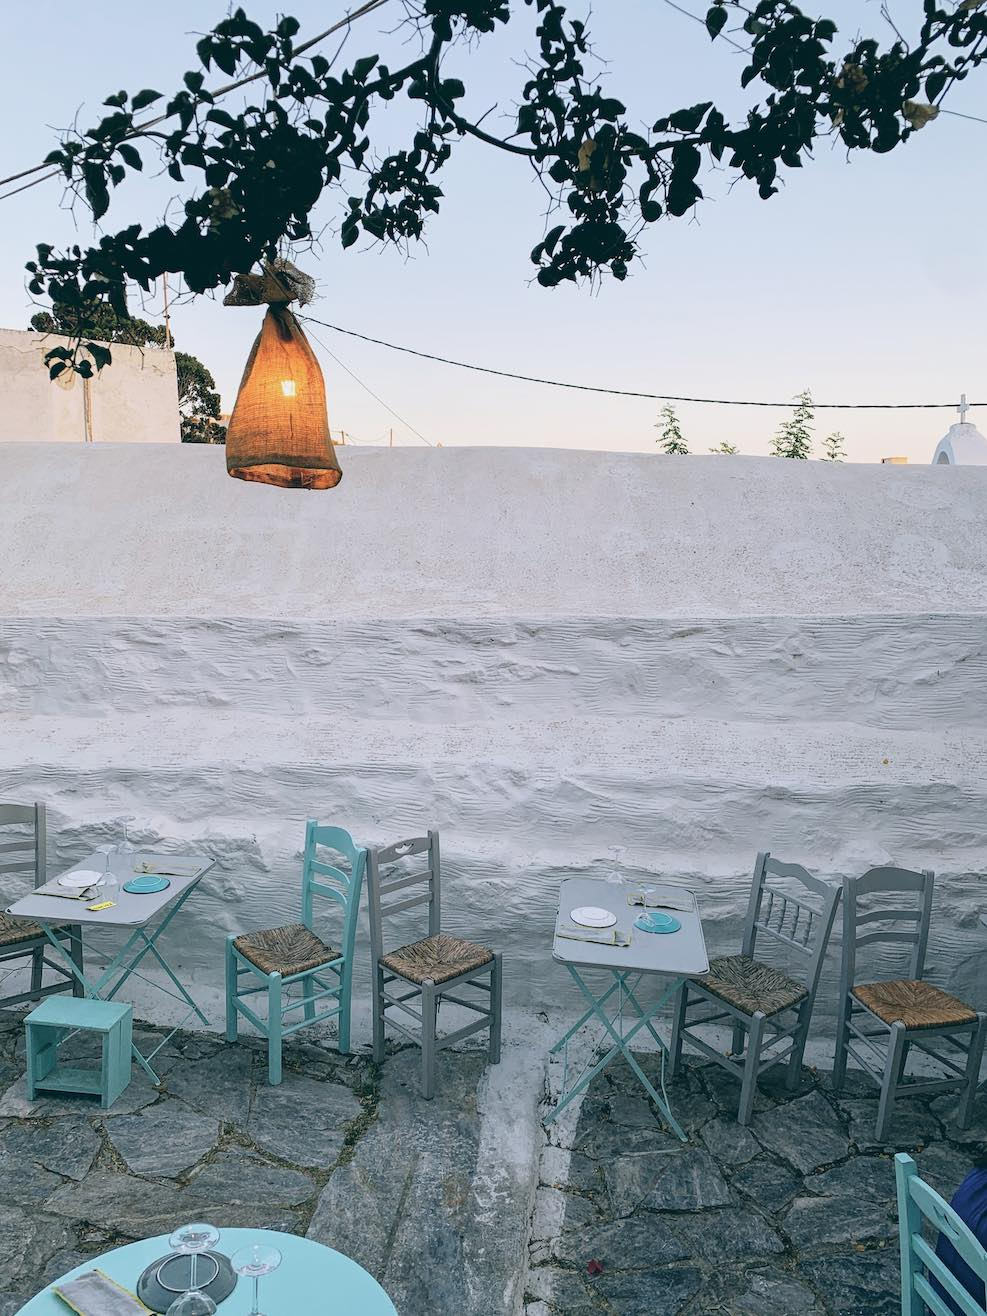 Apospero, Amorgos - Travel Food People